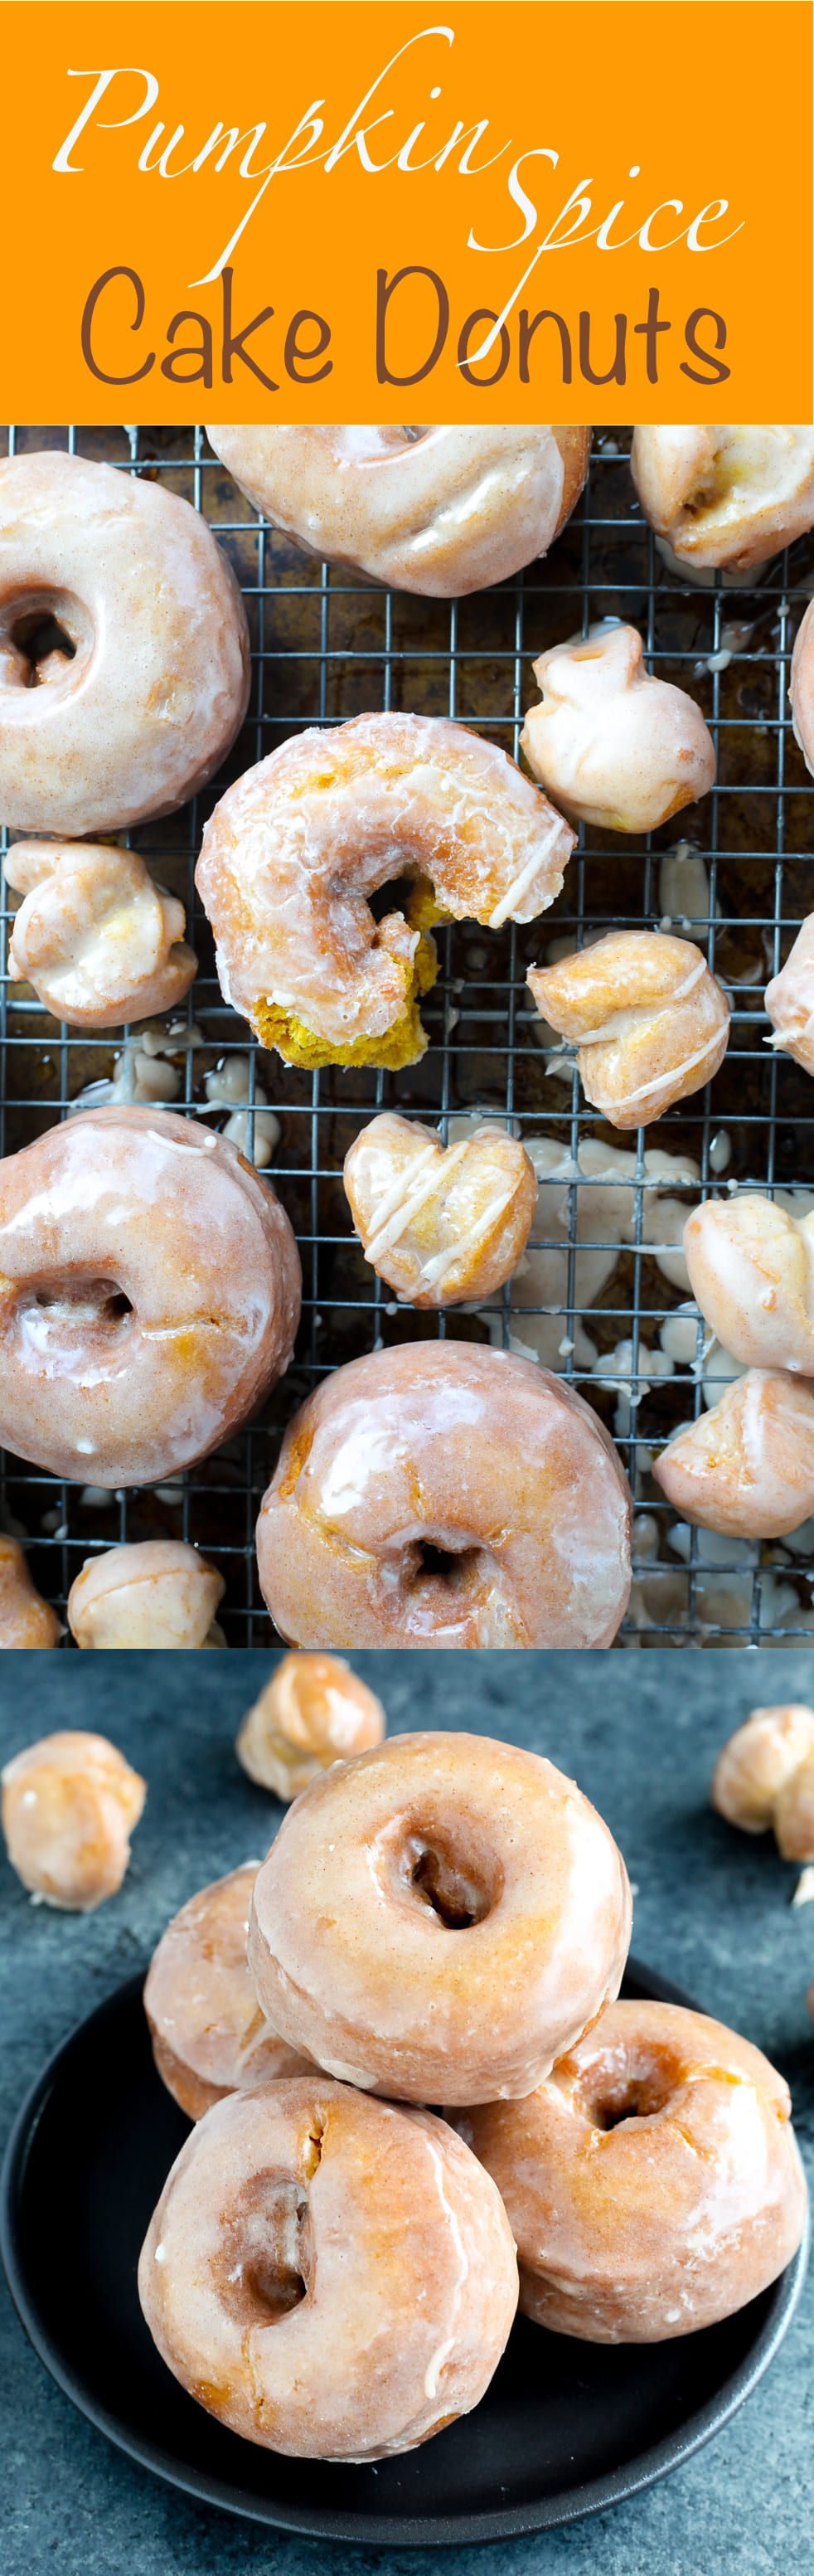 These Pumpkin Spice Cake Donuts are packed with real pumpkin and warming spices then fried to perfection and glazed with a sweet cinnamon sugar. Pretty much Pumpkin Breakfast Perfection.